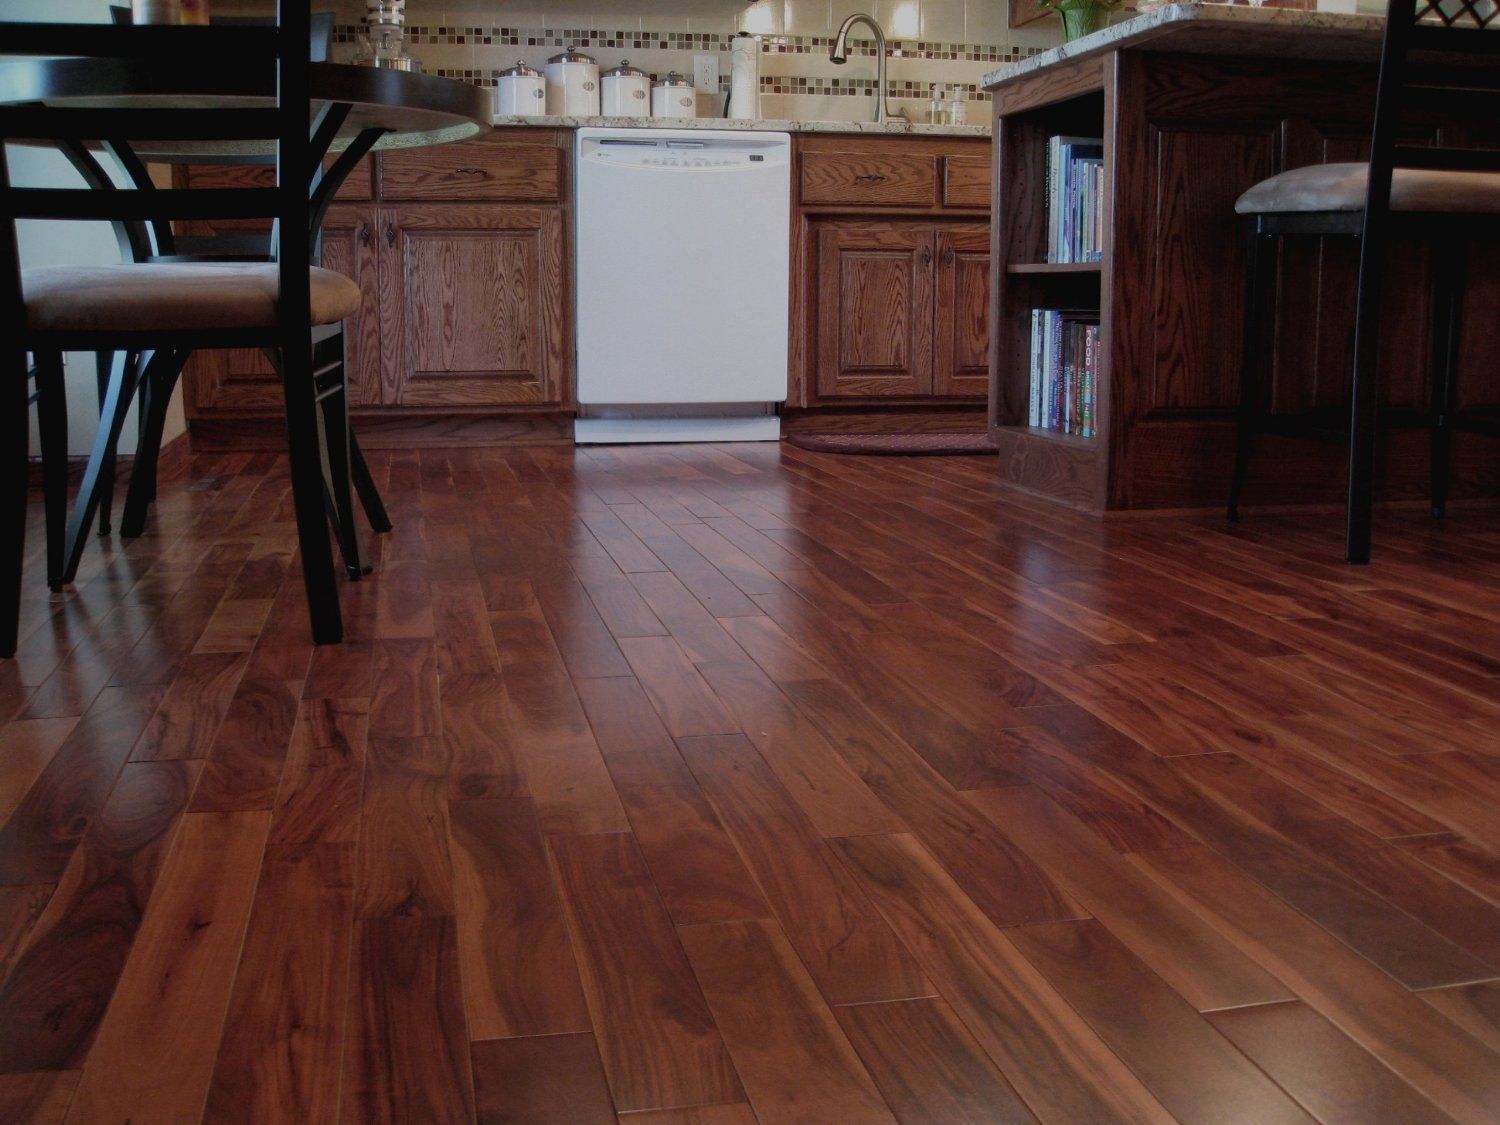 How to Get Scratches Out Of Wood Floors - How To Get Scratches Out Of Wood Floors Ideas For The Home